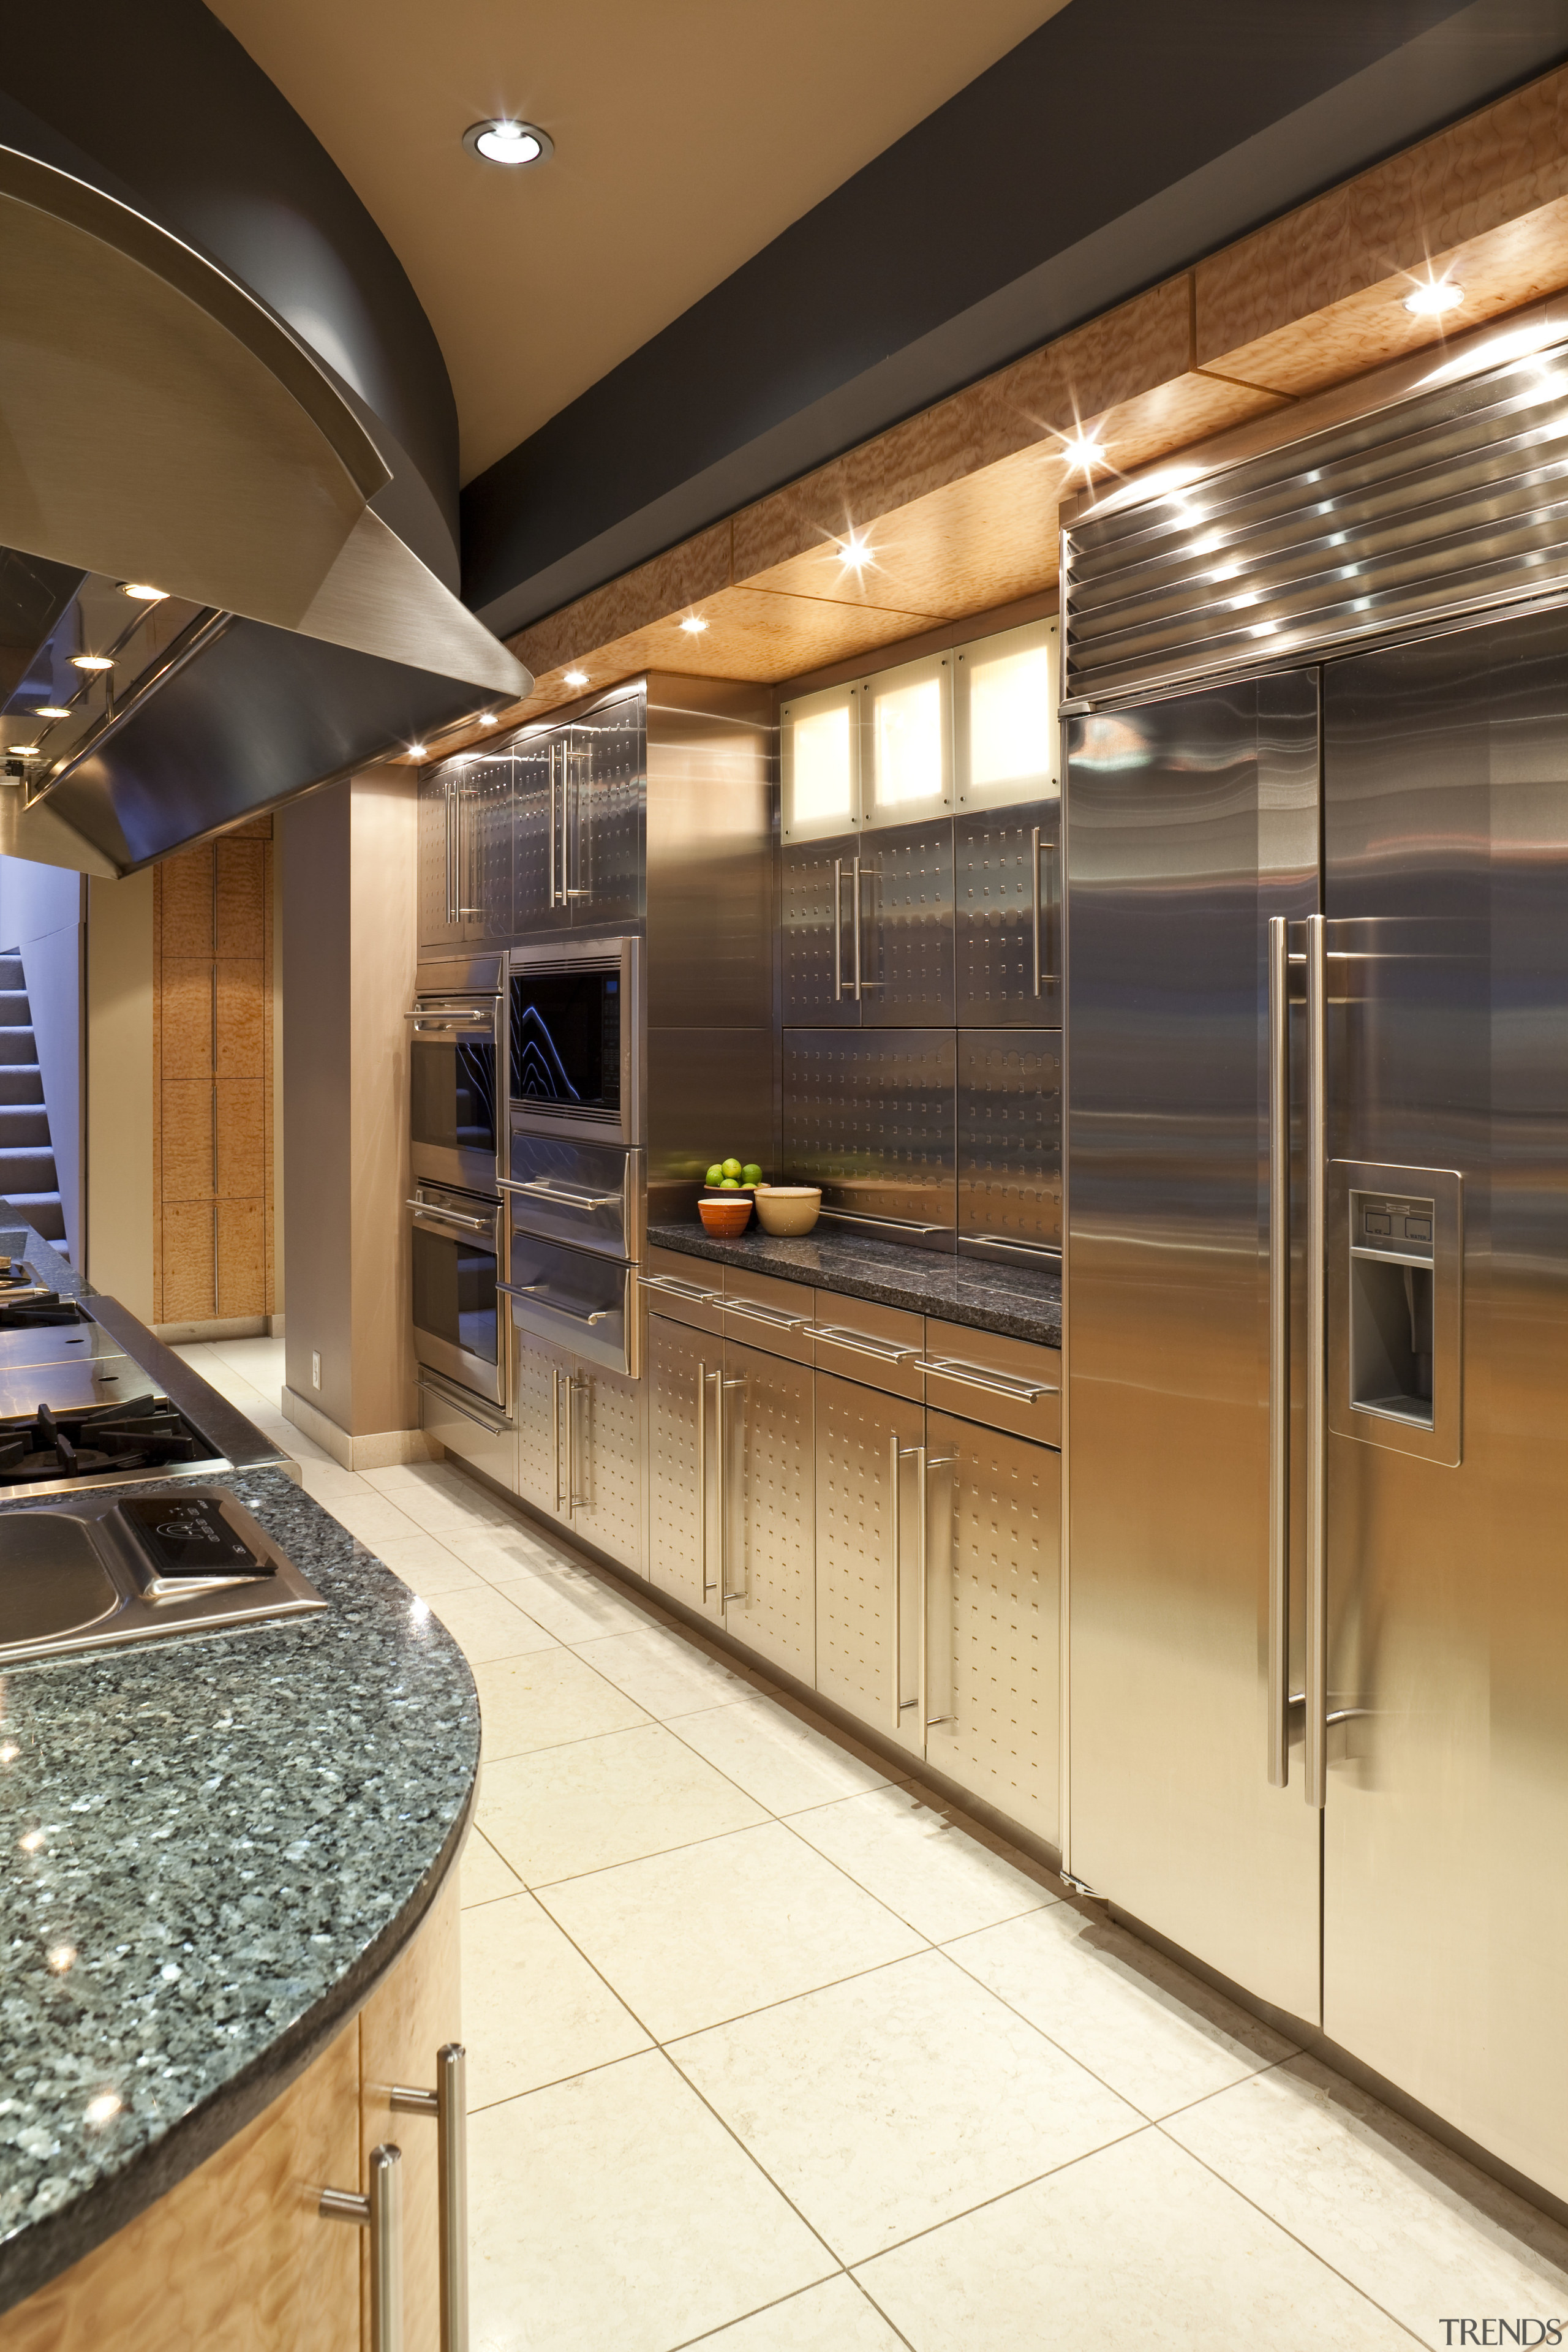 View of a kitchen which features a granite cabinetry, ceiling, countertop, interior design, kitchen, brown